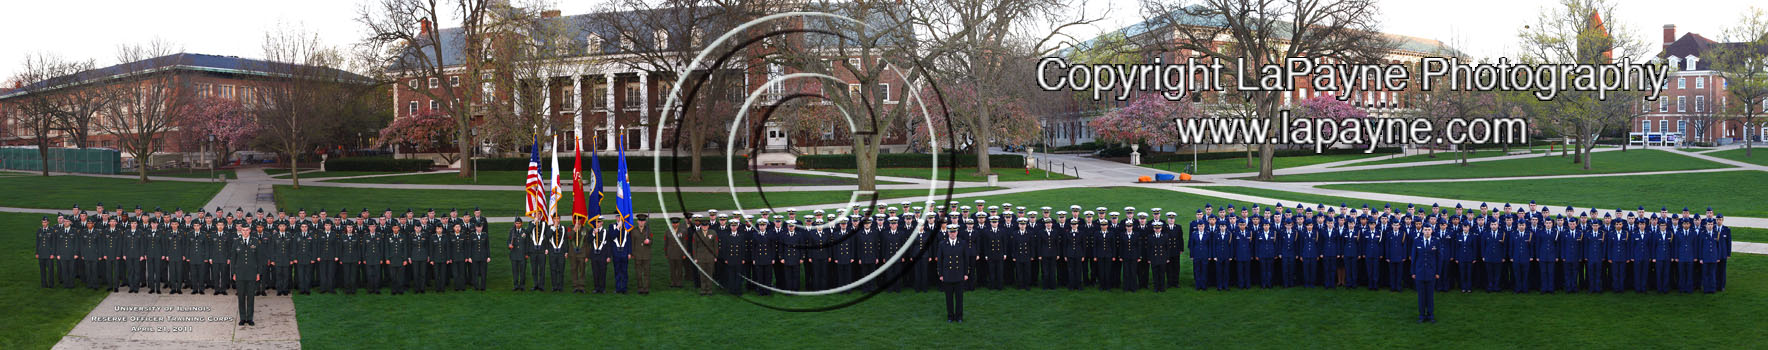 Illinois ROTC 2011 Panorama